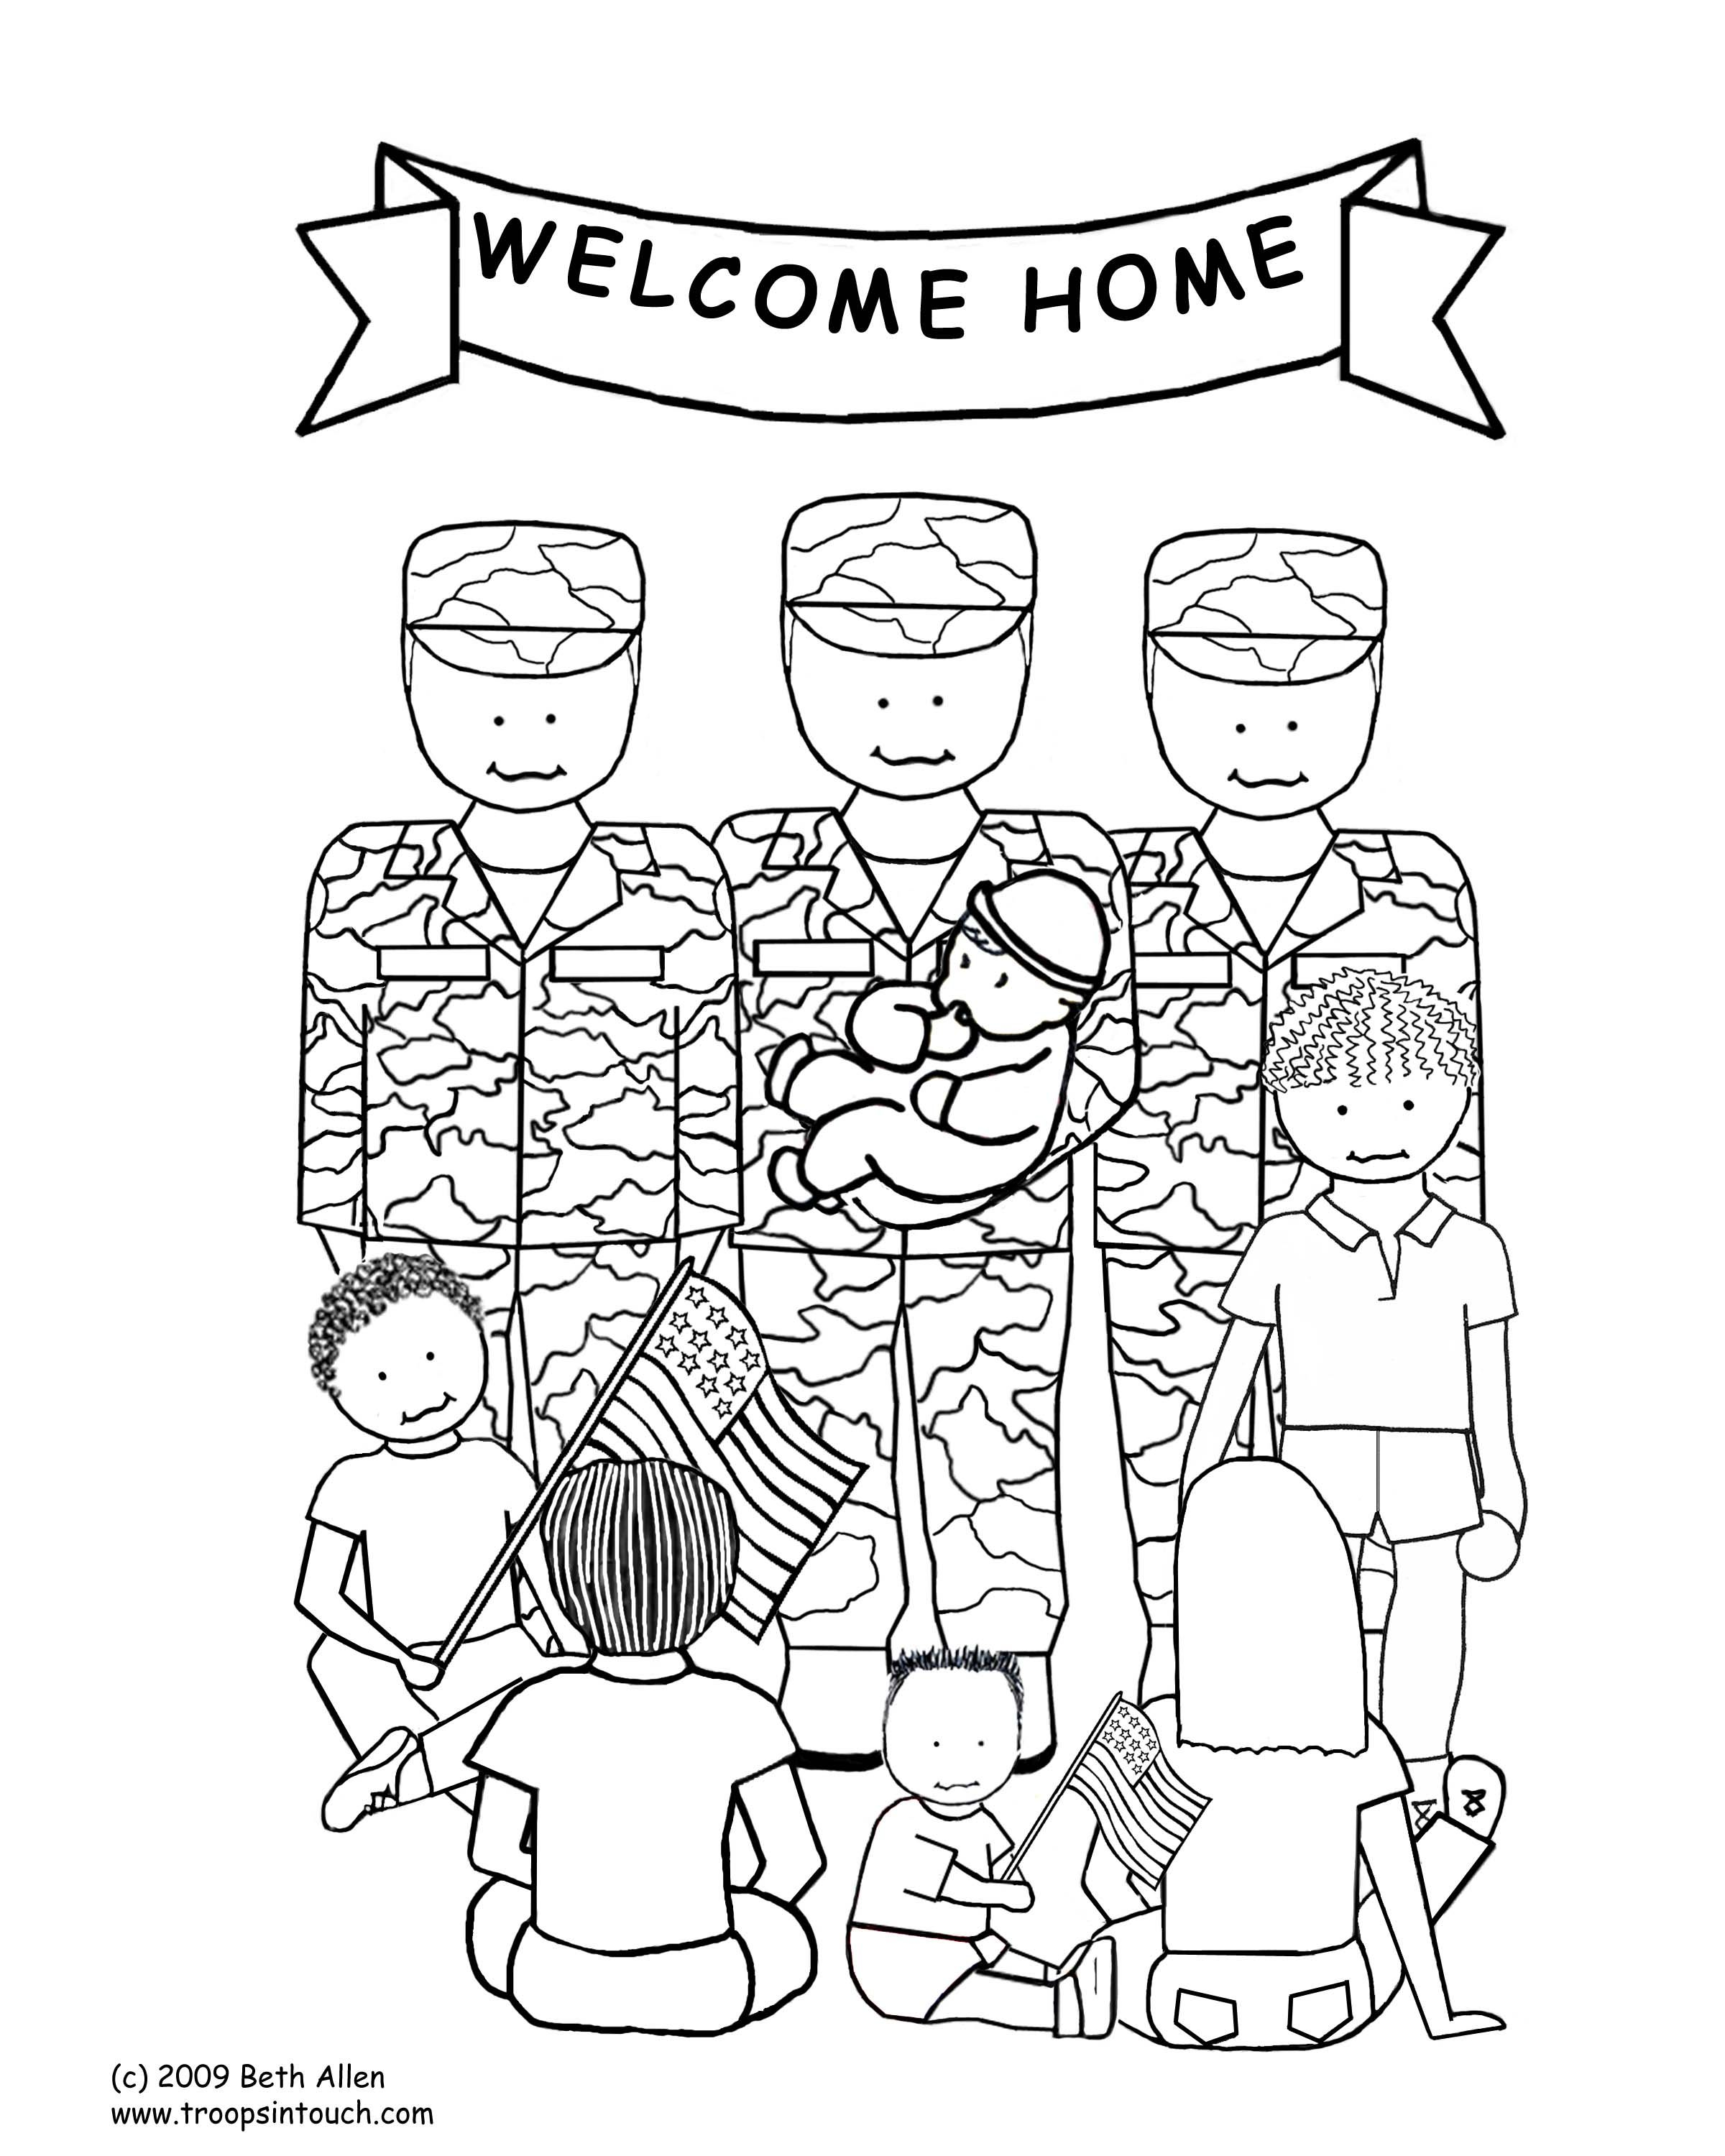 coloring pages about respect - photo#13